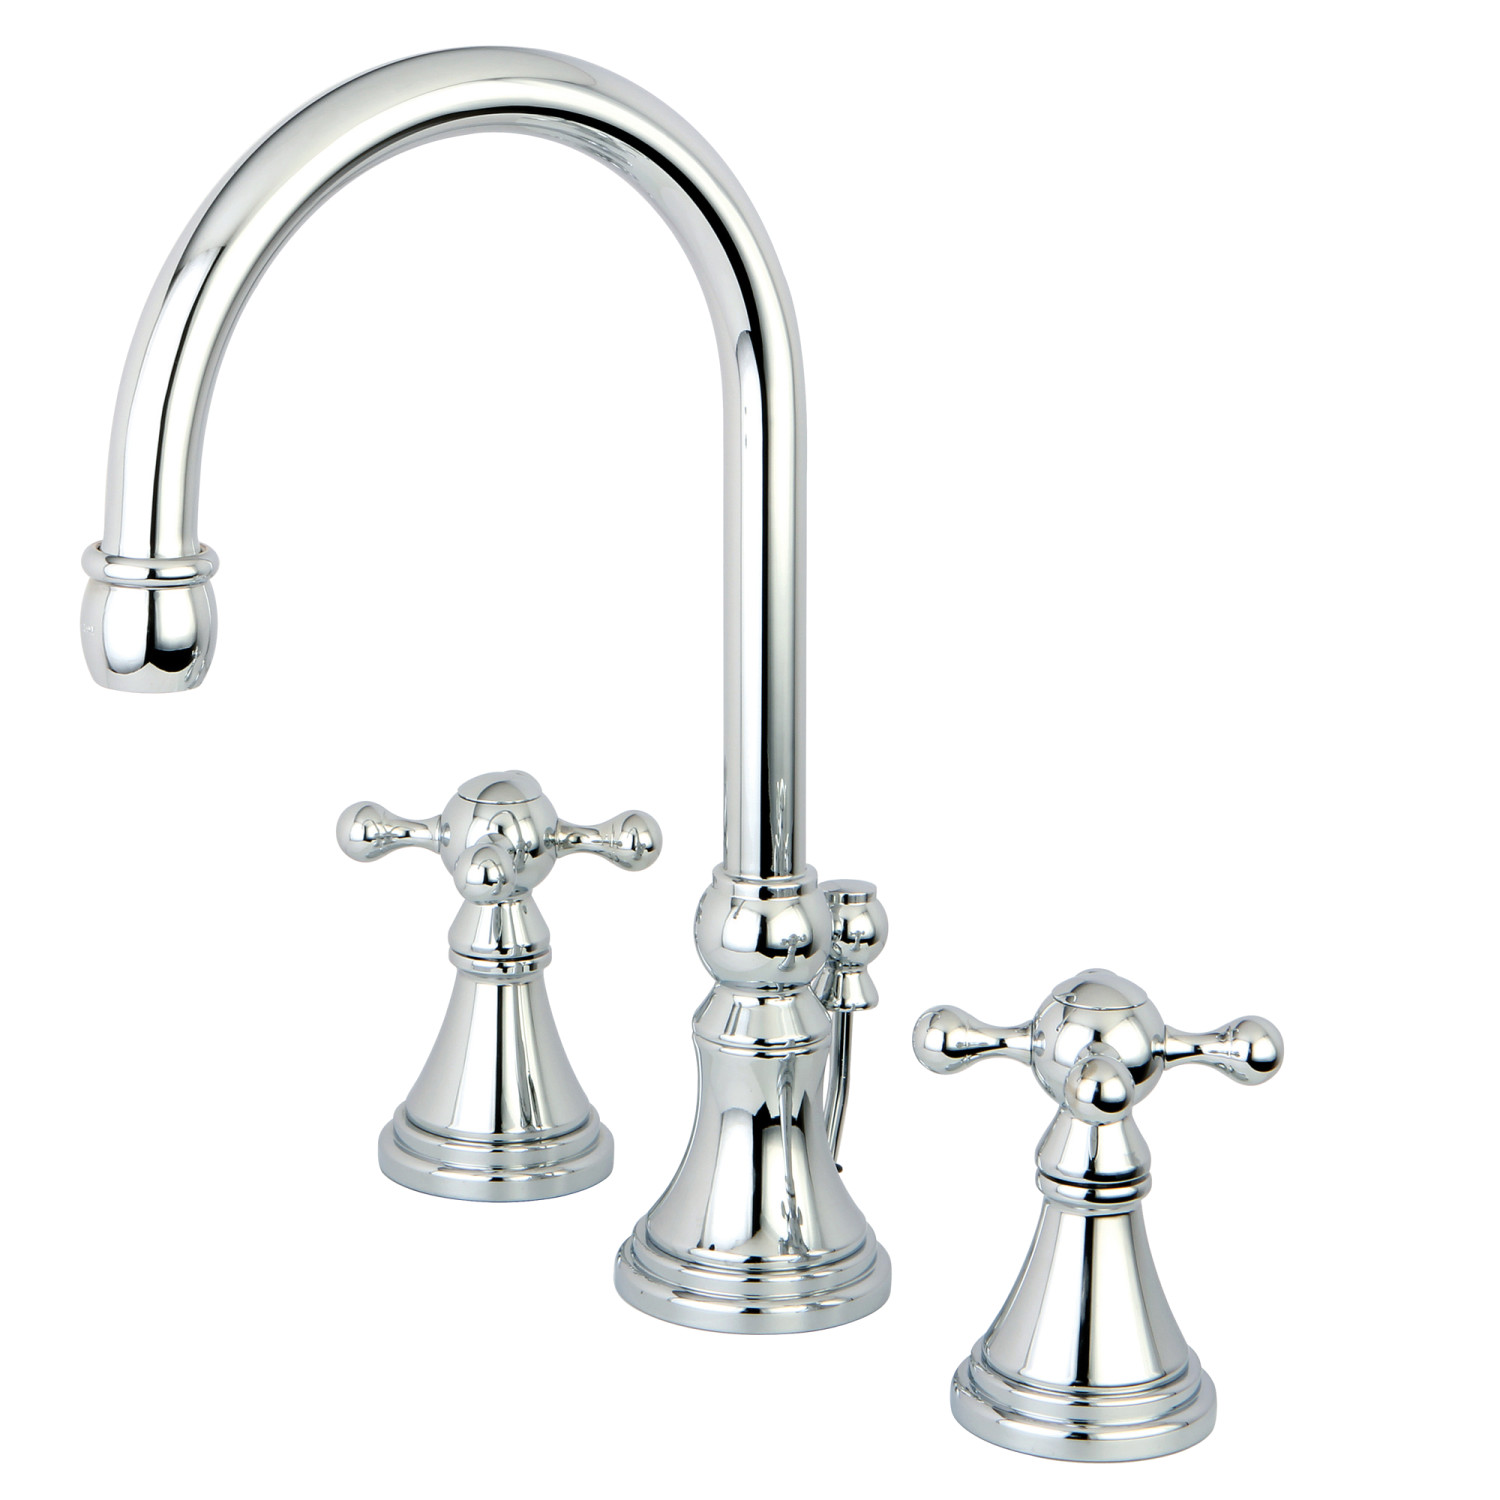 Traditional Two-Handle 3-Hole Deck Mounted Widespread Bathroom Faucet Brass Pop-Up in Polished Chrome with Finish Options